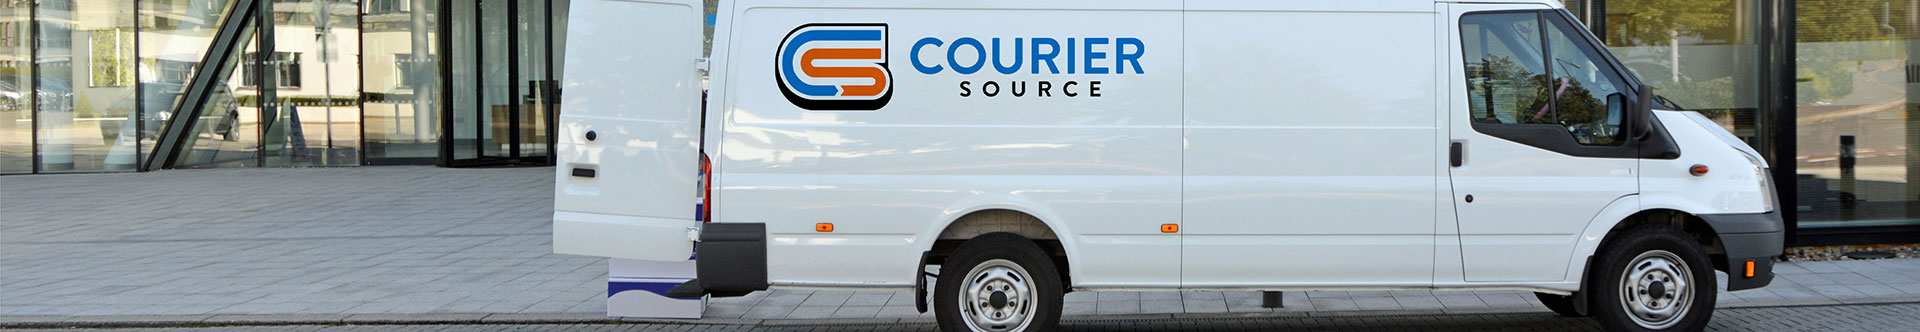 MN-Courier-Service-Drivers.jpg